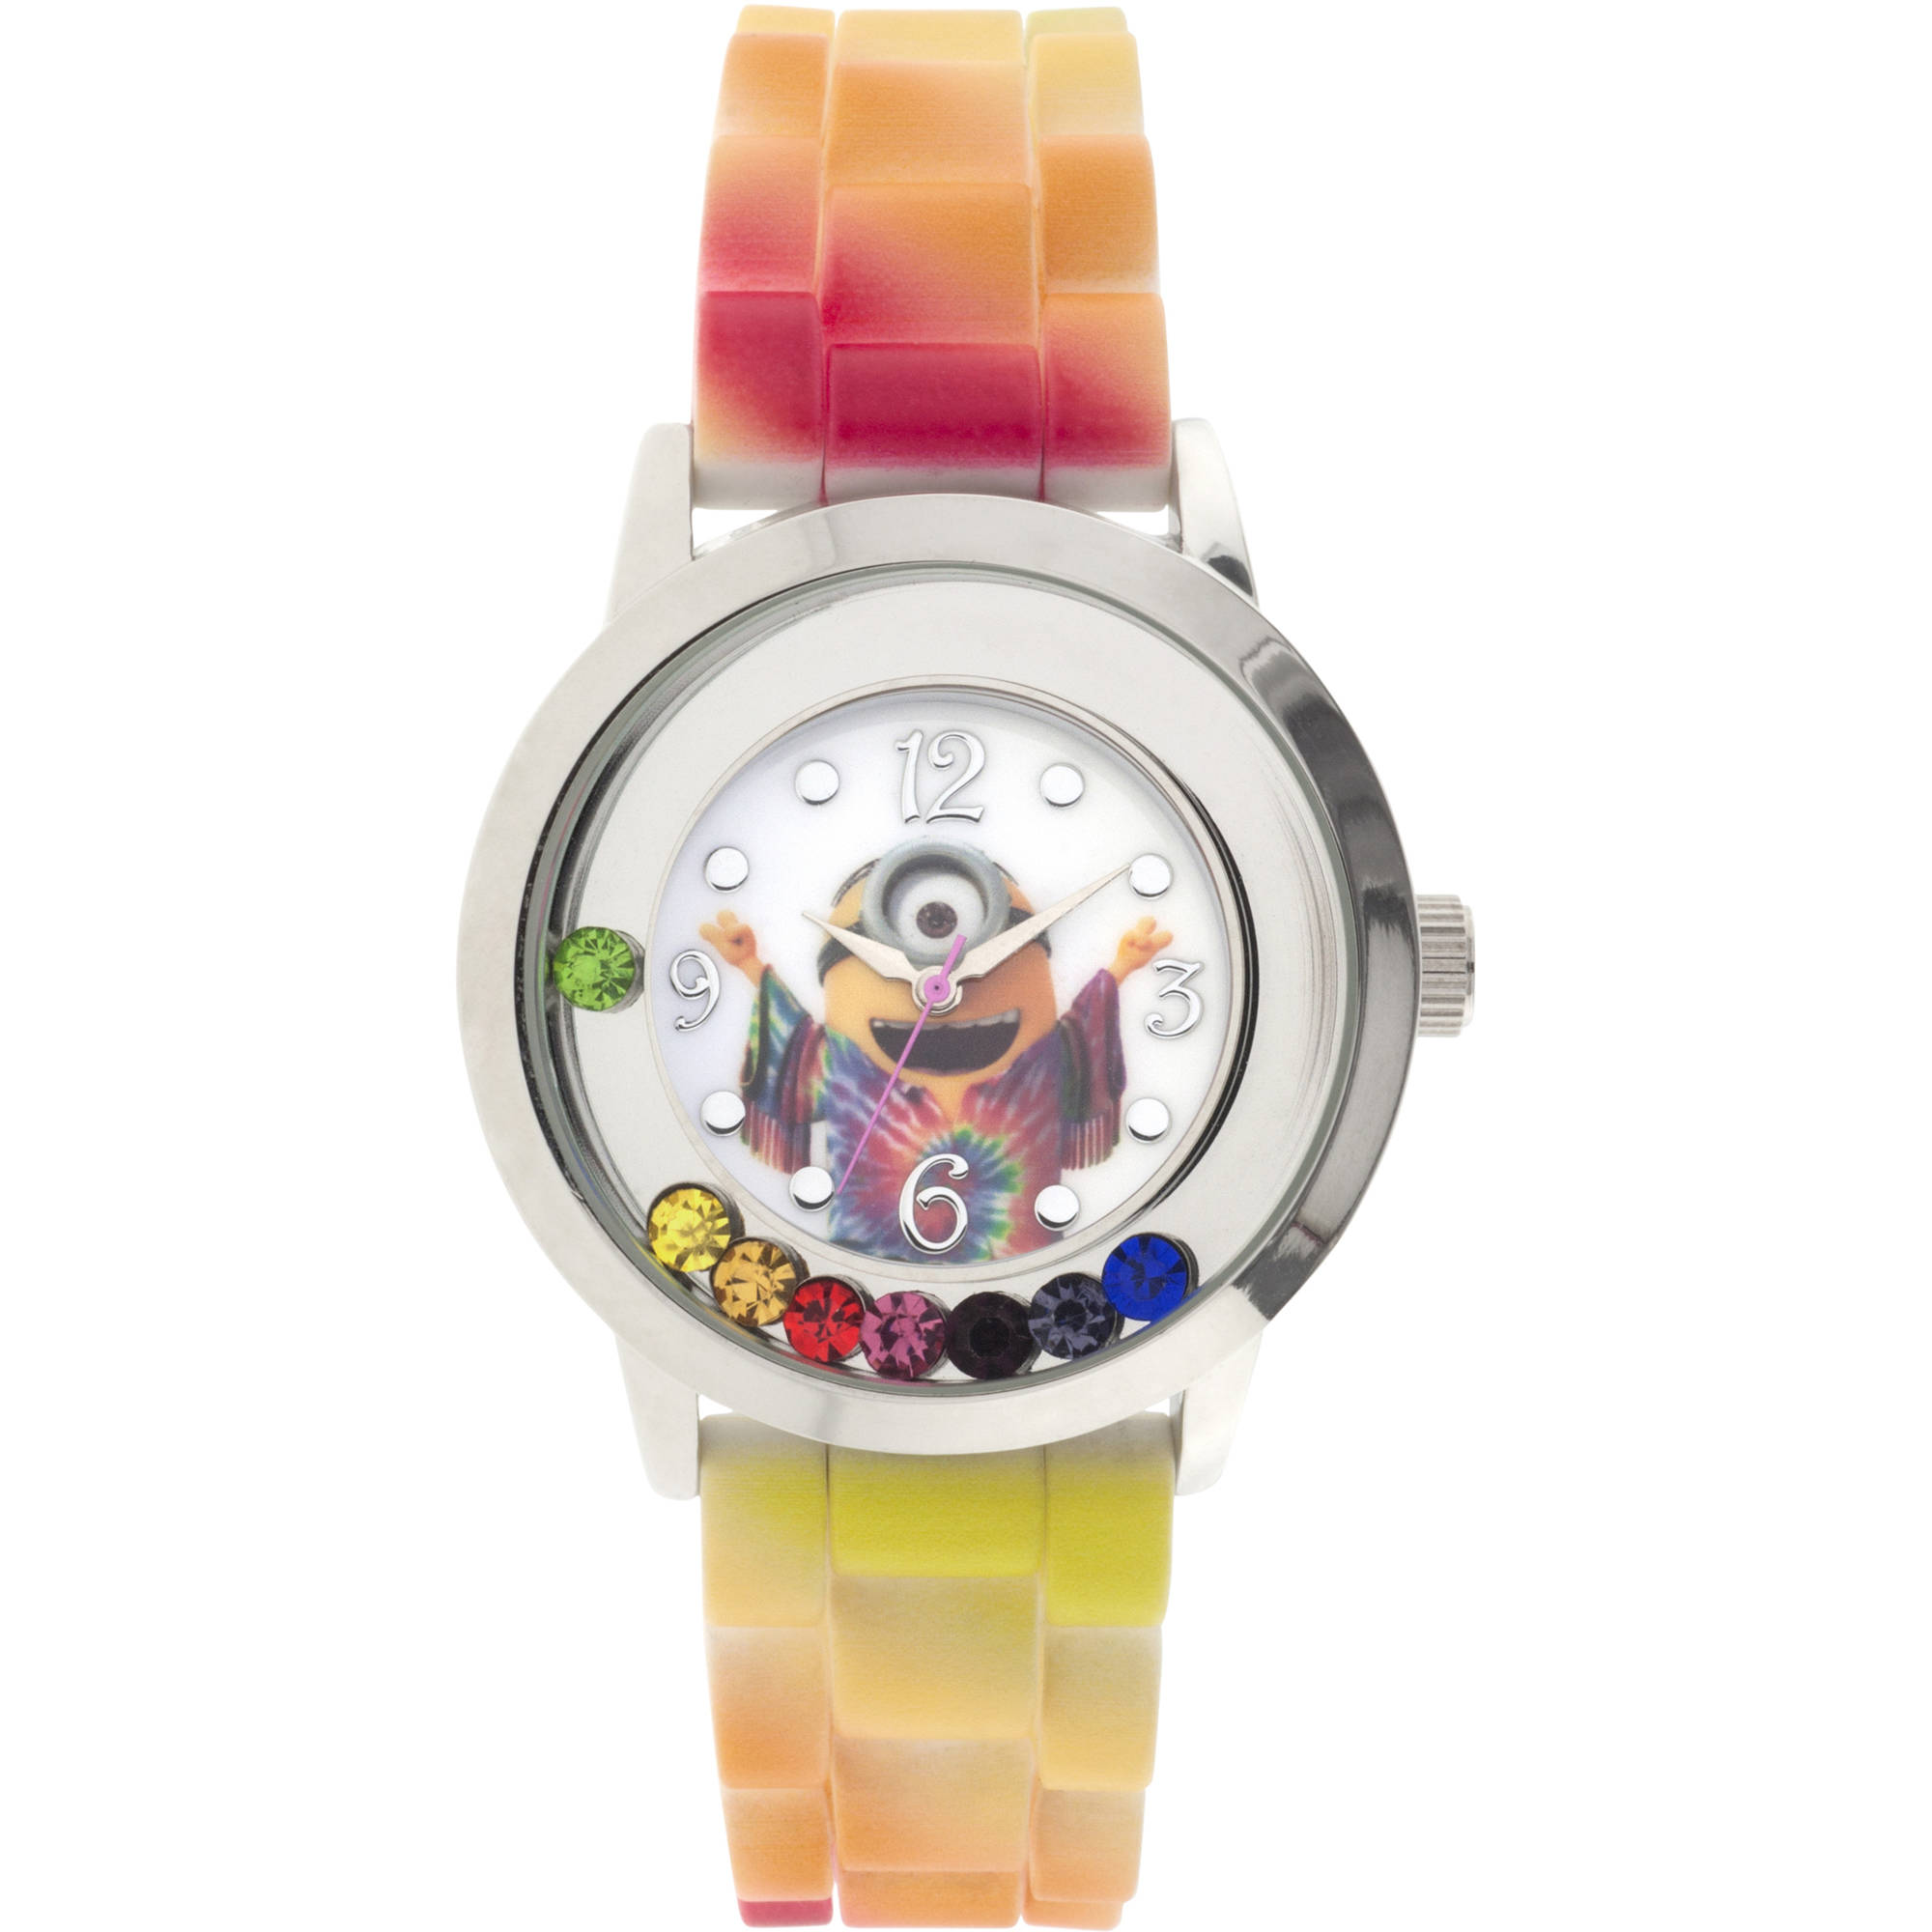 Minions Silver Case Character-Printed Dial Analog Watch, Colored Stones on Dial, Colorful Strap